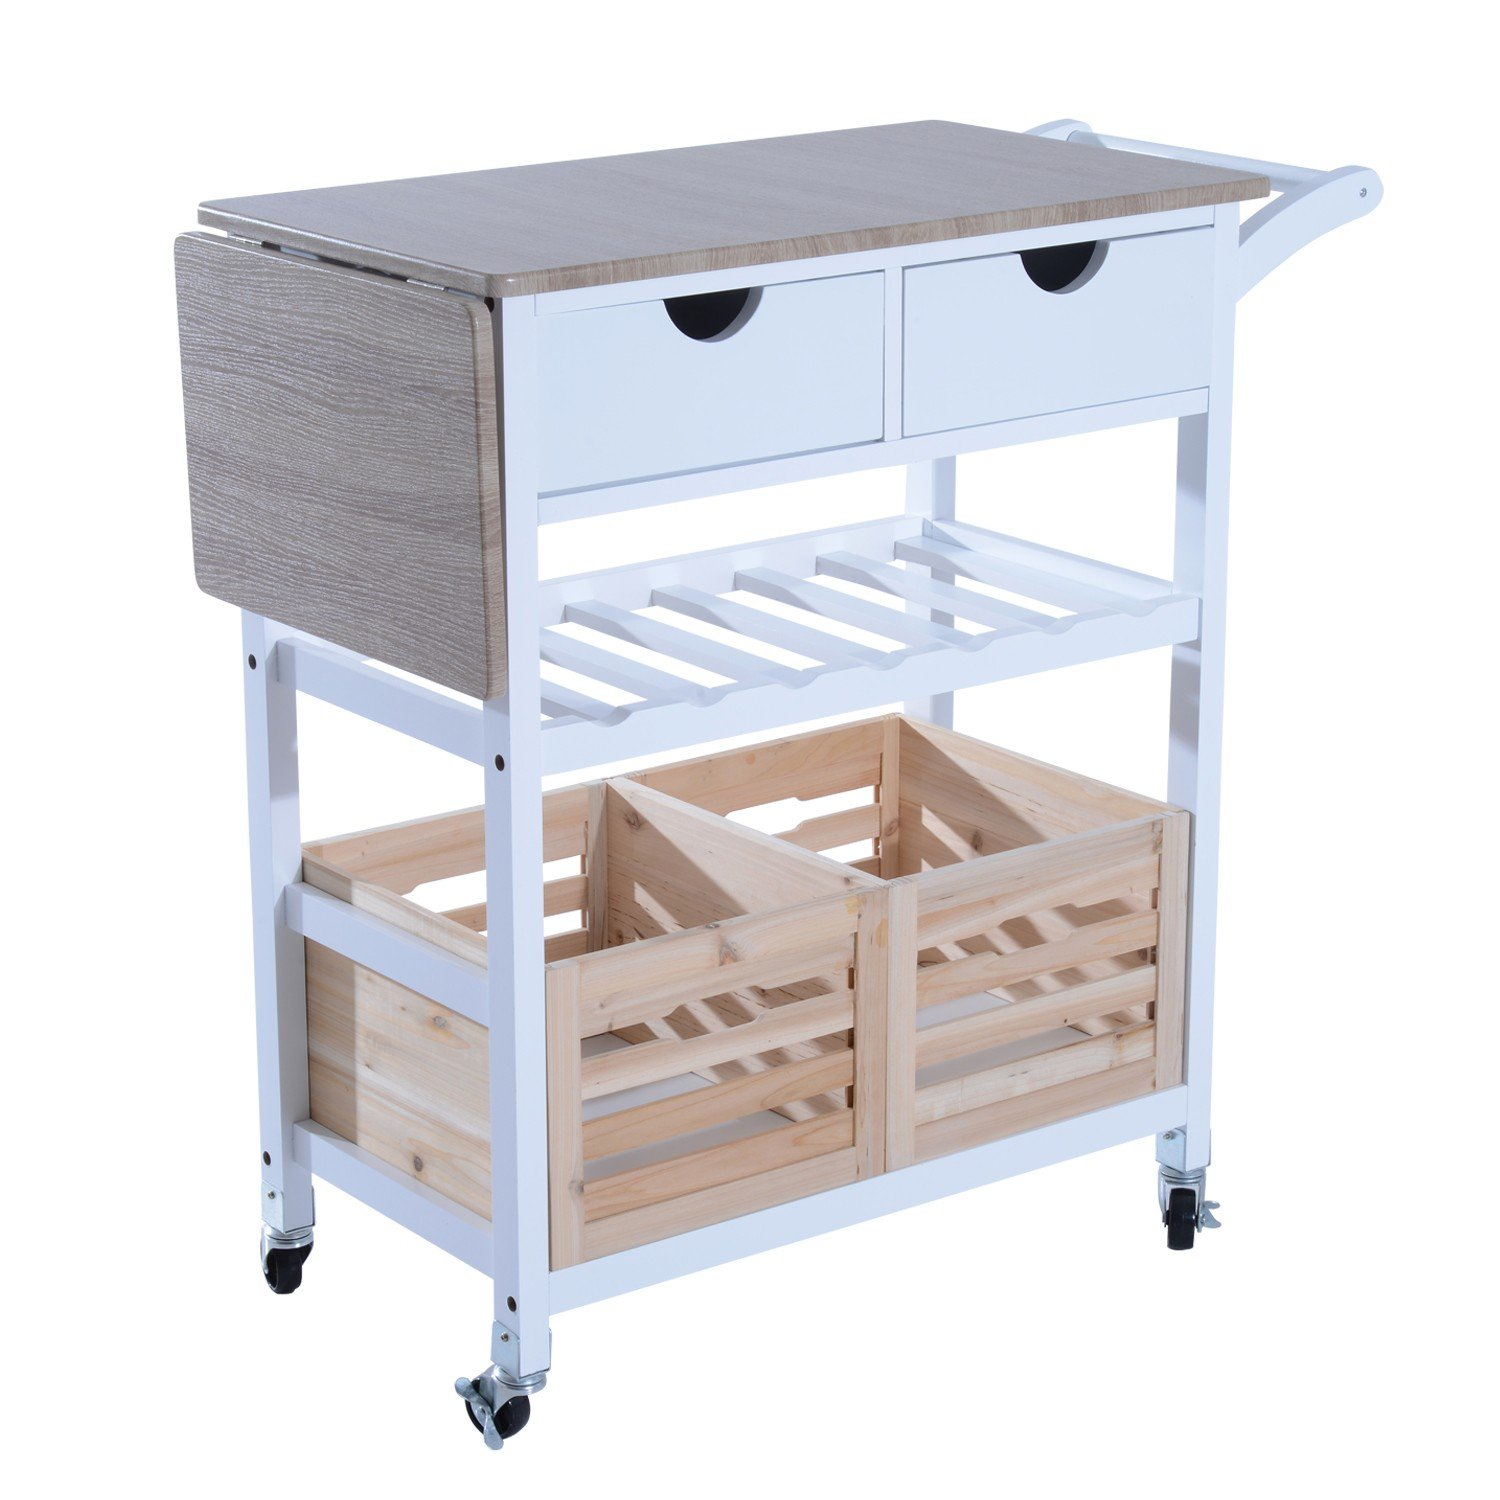 Rolling Wood Top Drop-Leaf Kitchen Trolley Cart Storage Drawer Stand w- Wine Rack